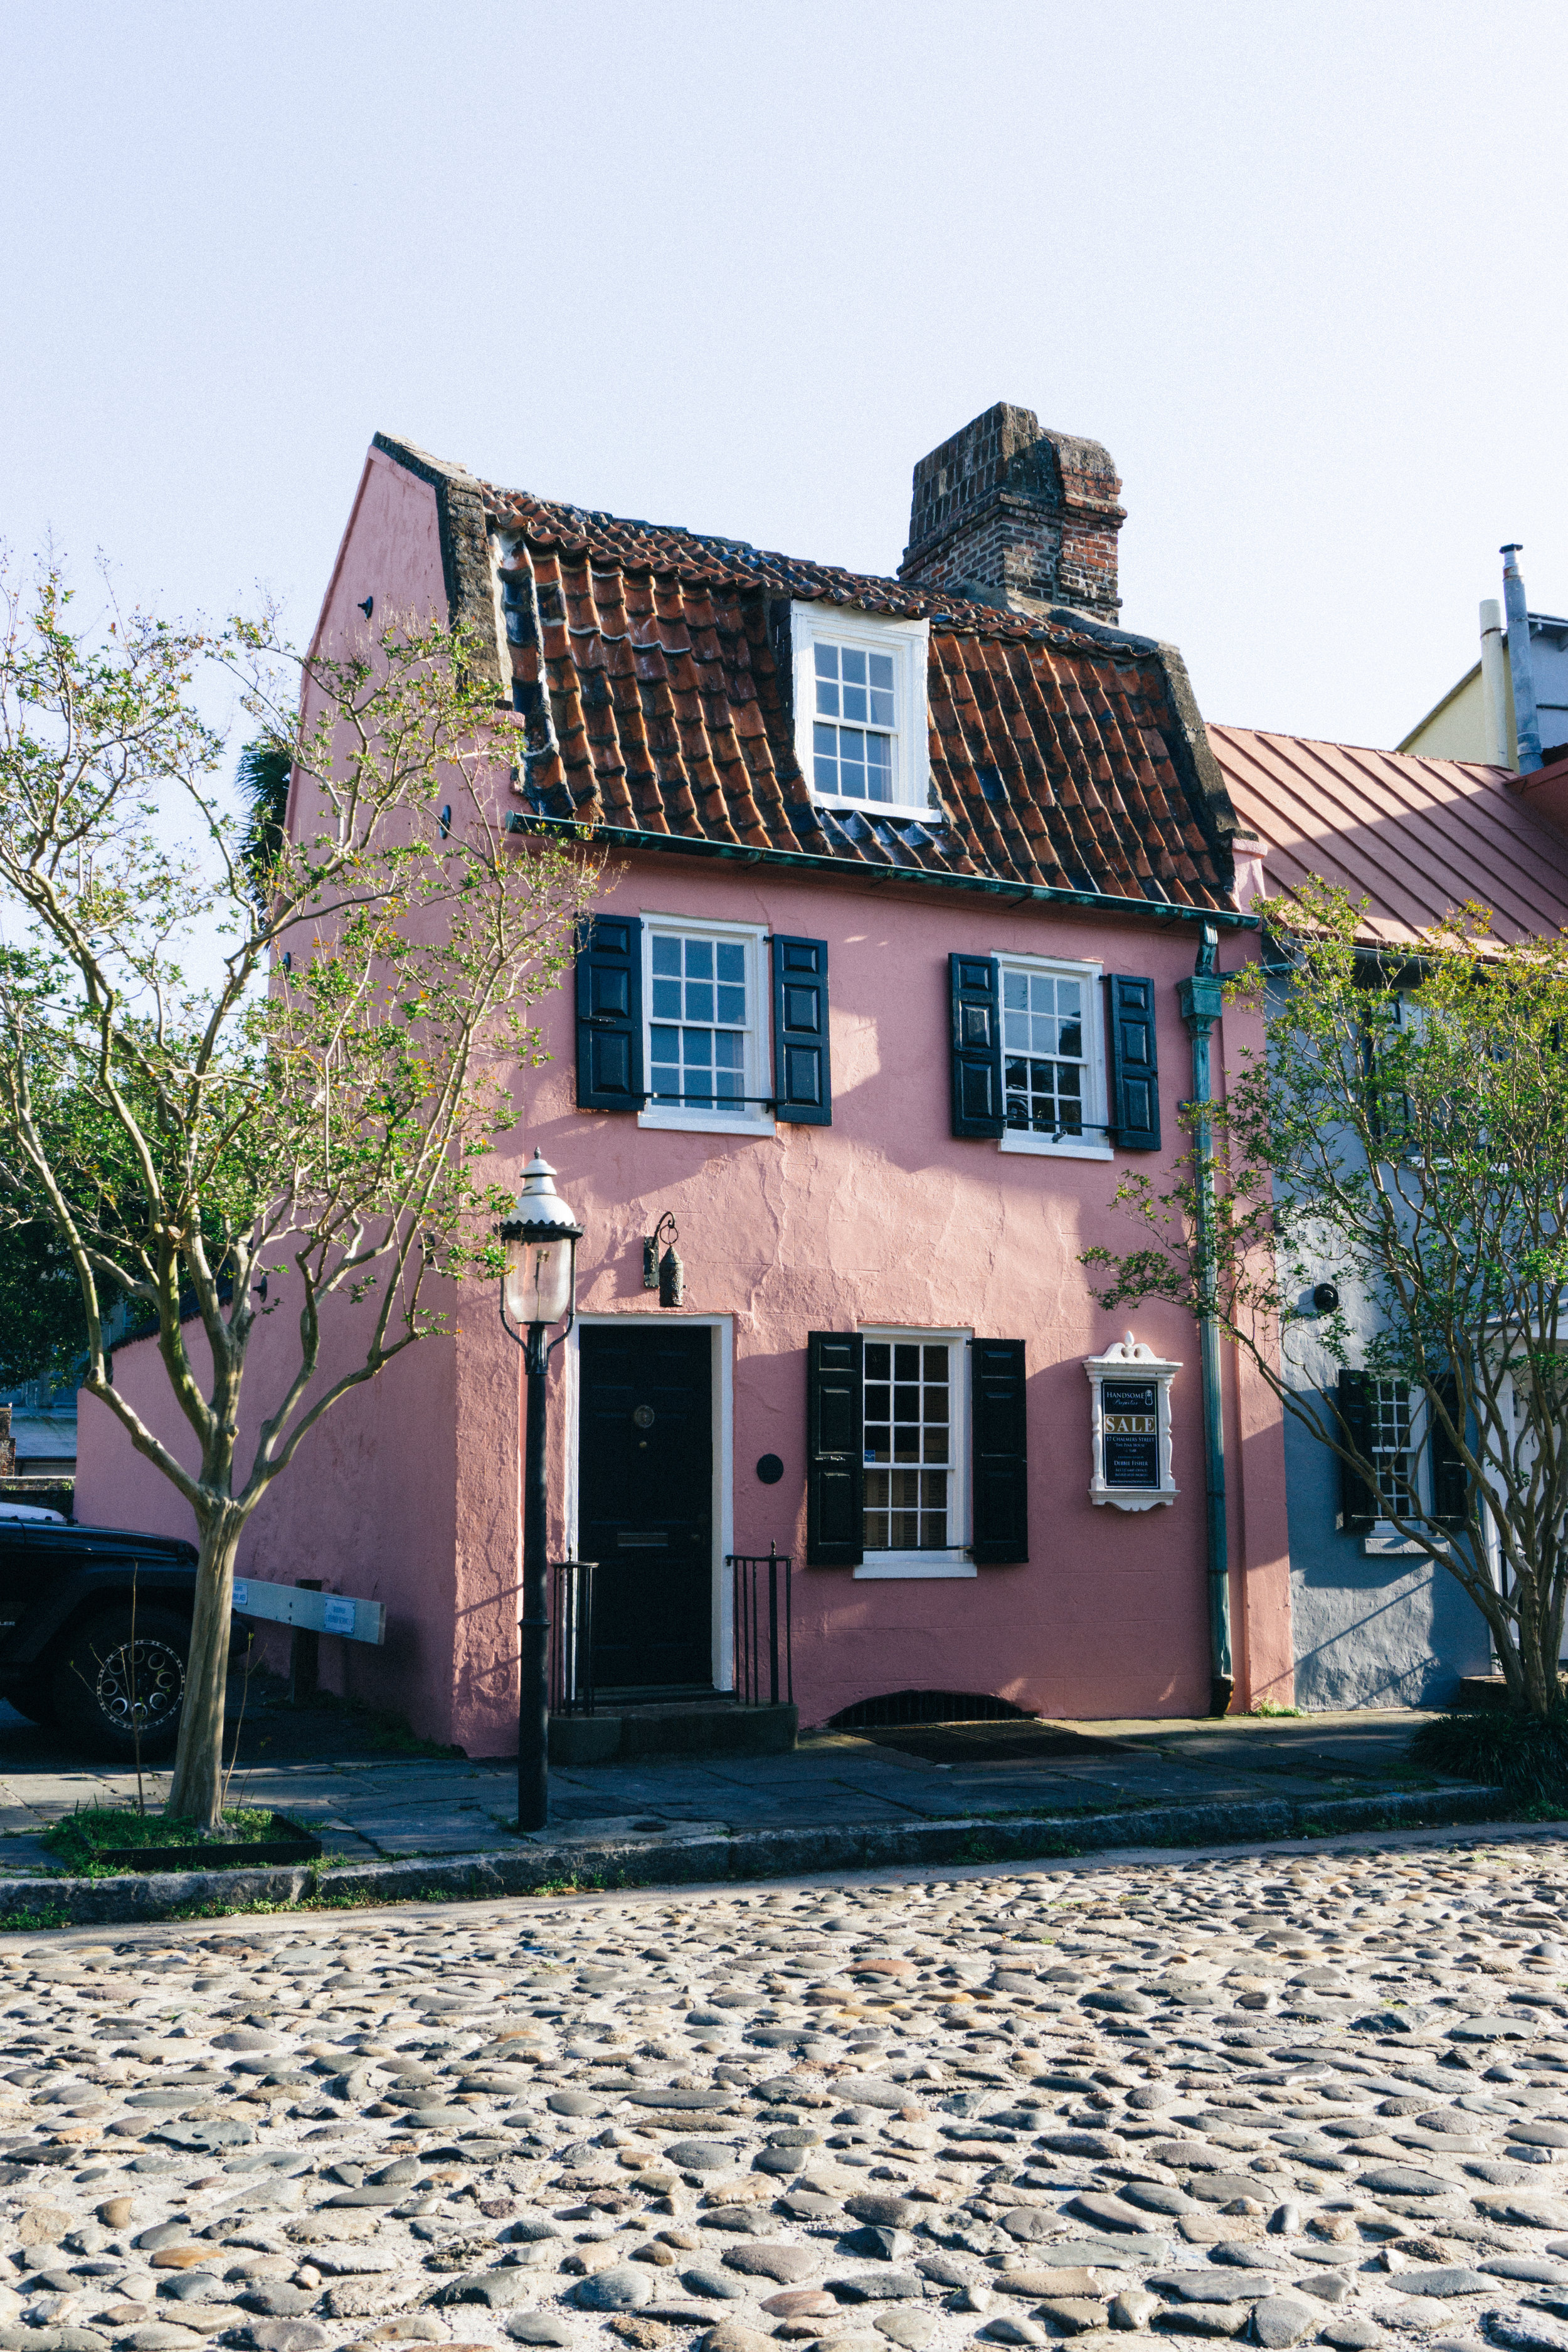 The Pink House on Chalmers Street in Charleston, SC is currently for sale.